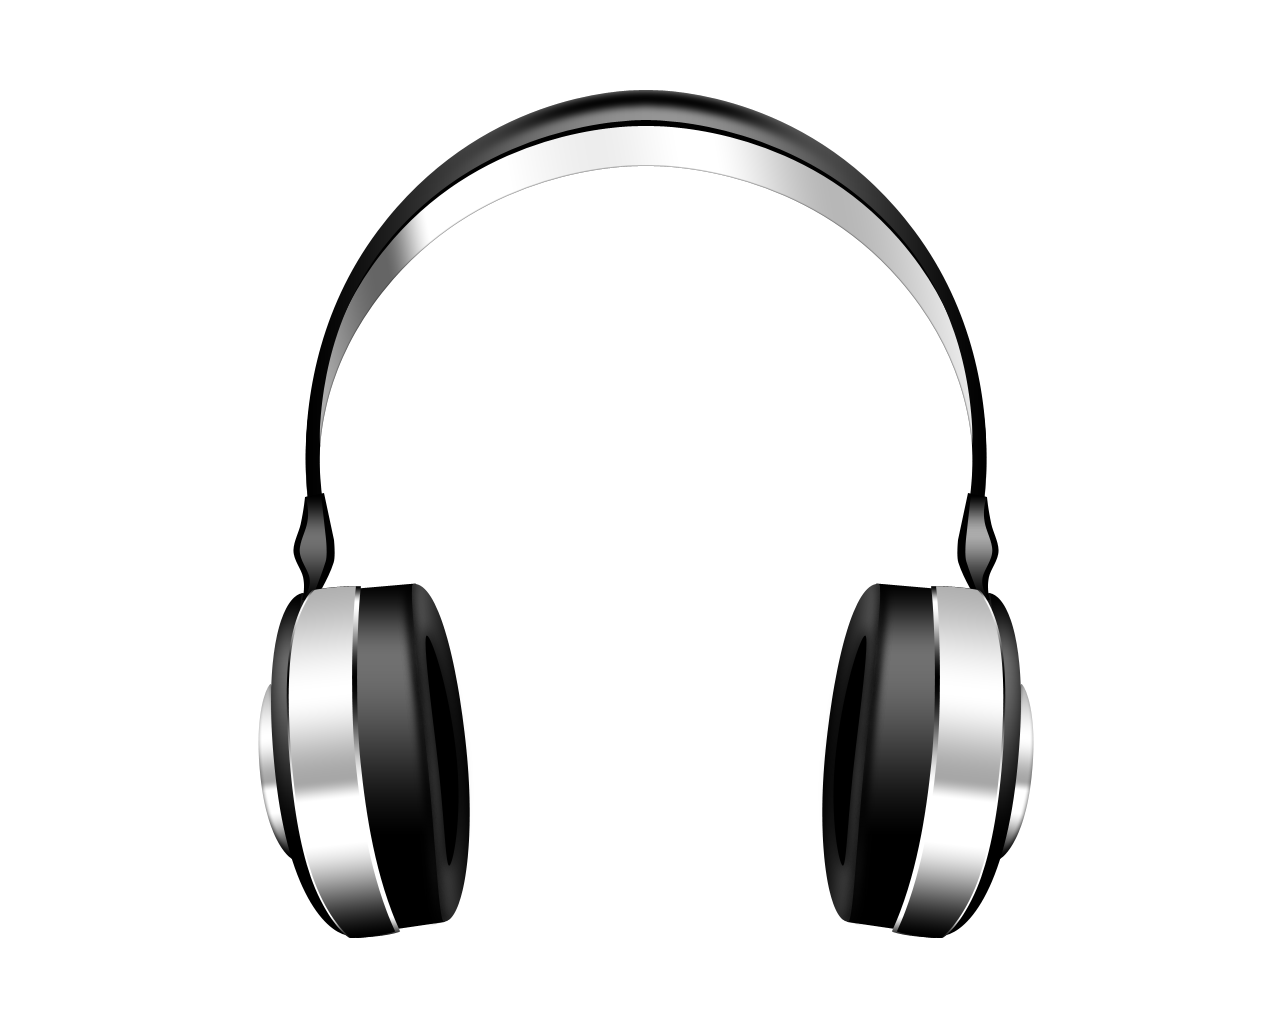 Phone Headset Png - Headphone PNG images